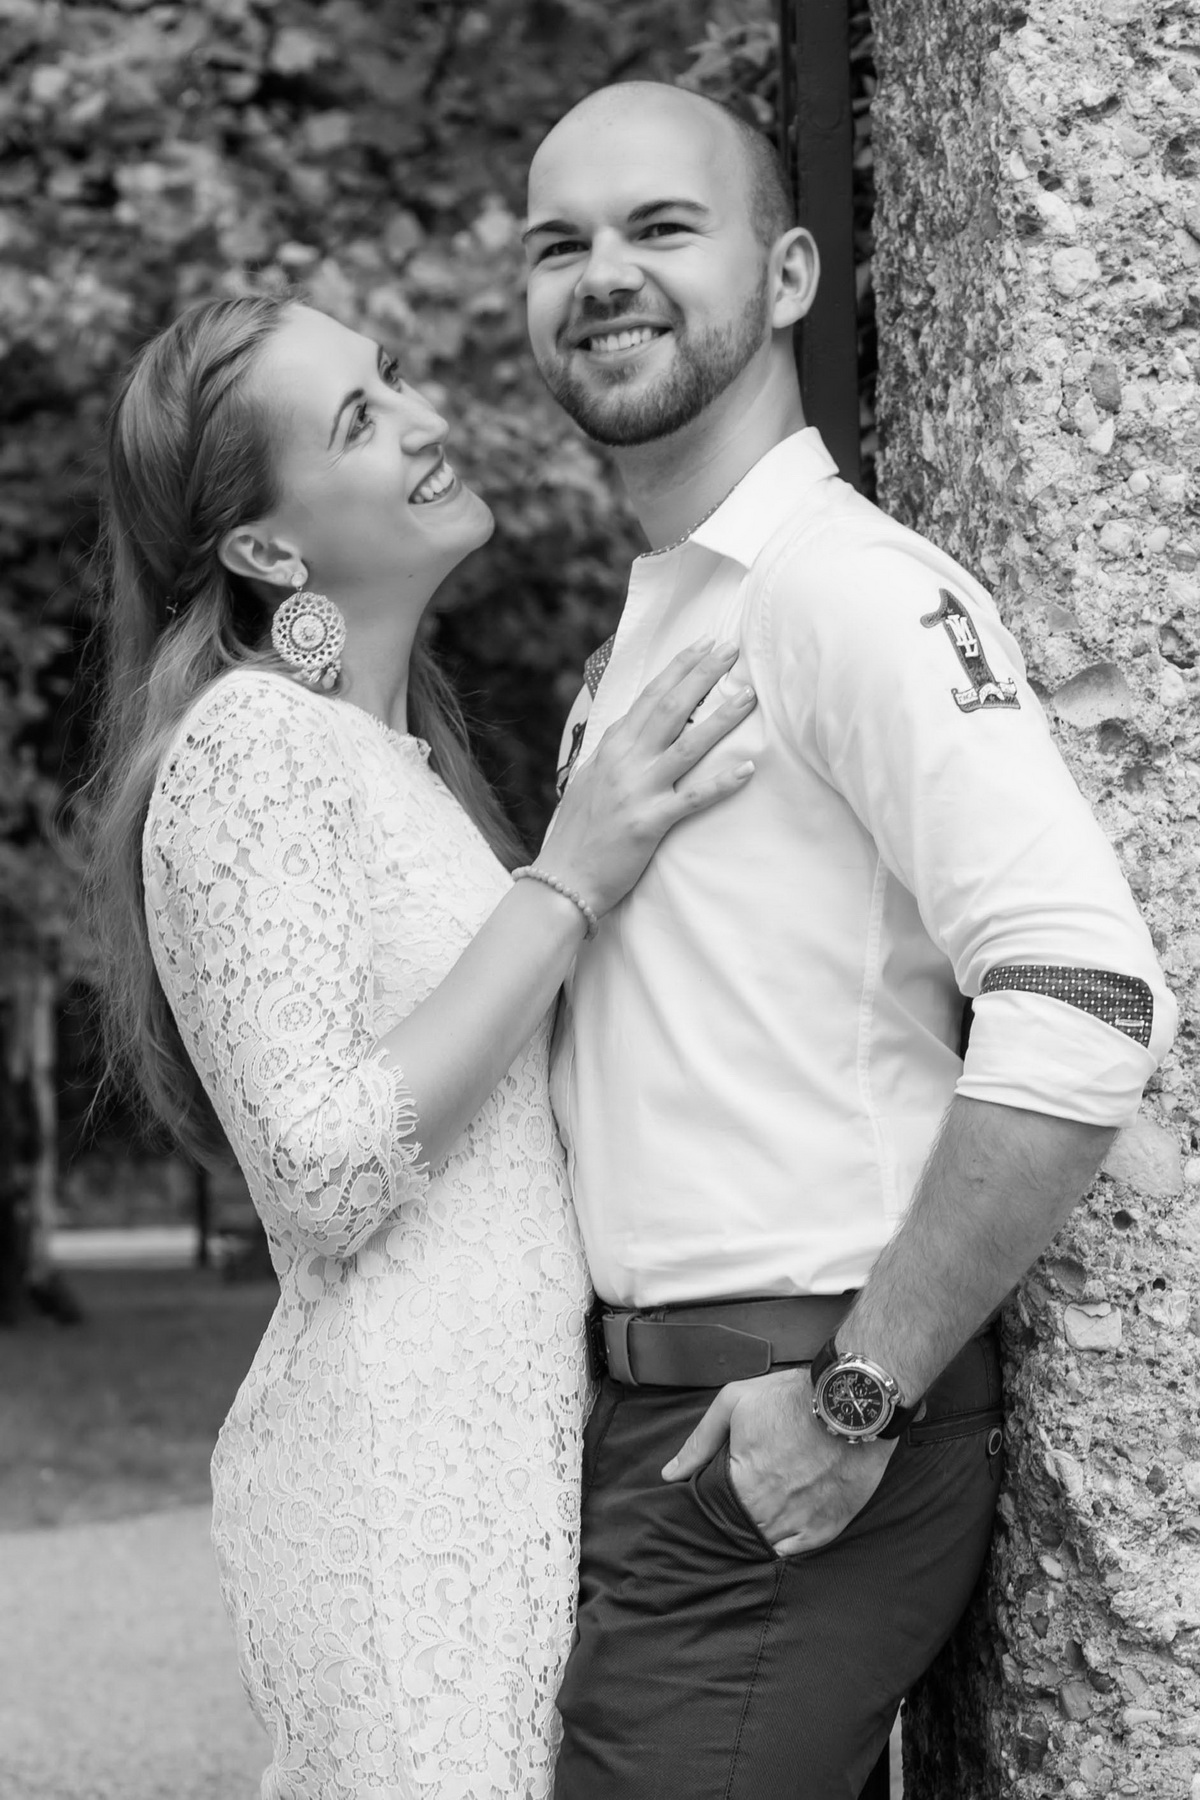 Claudia Sittig Photography - Couple - Love - Theresa and Thomas - 23